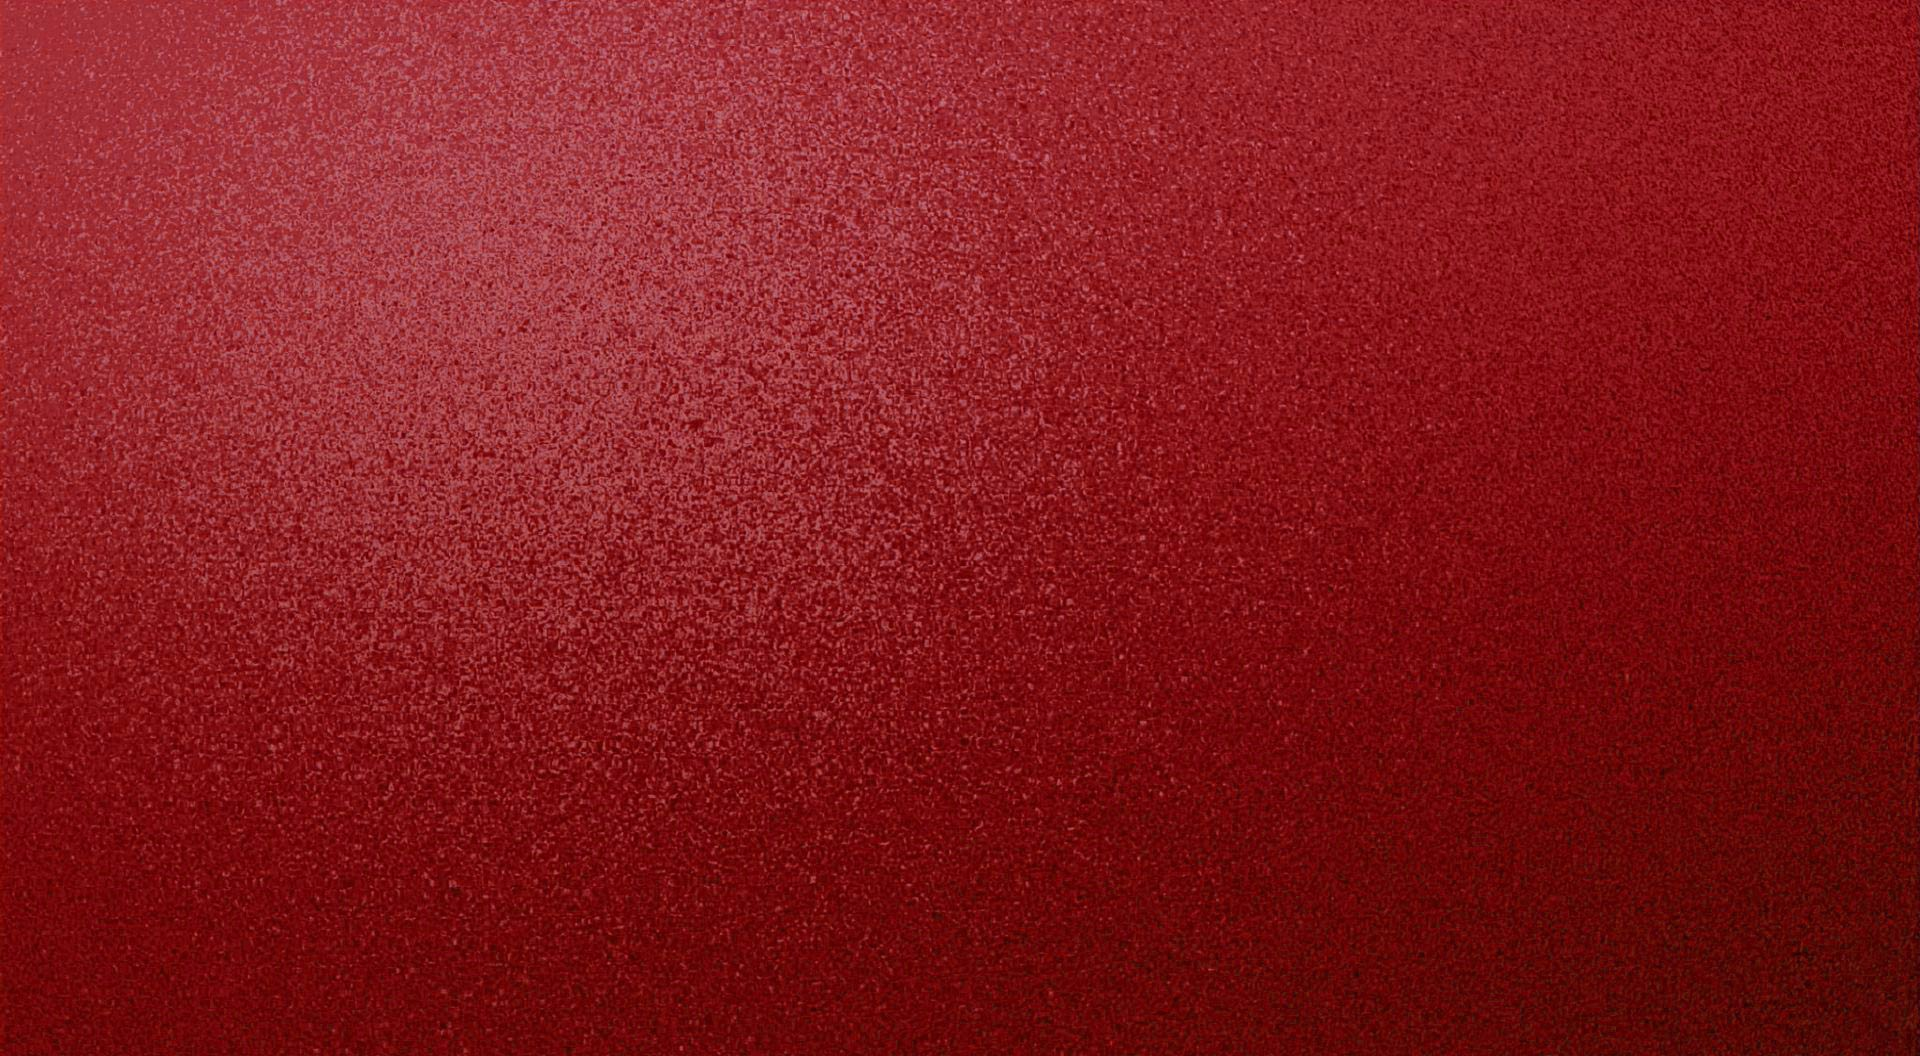 Red textured speckled desktop background wallpaper for use with Mac ...